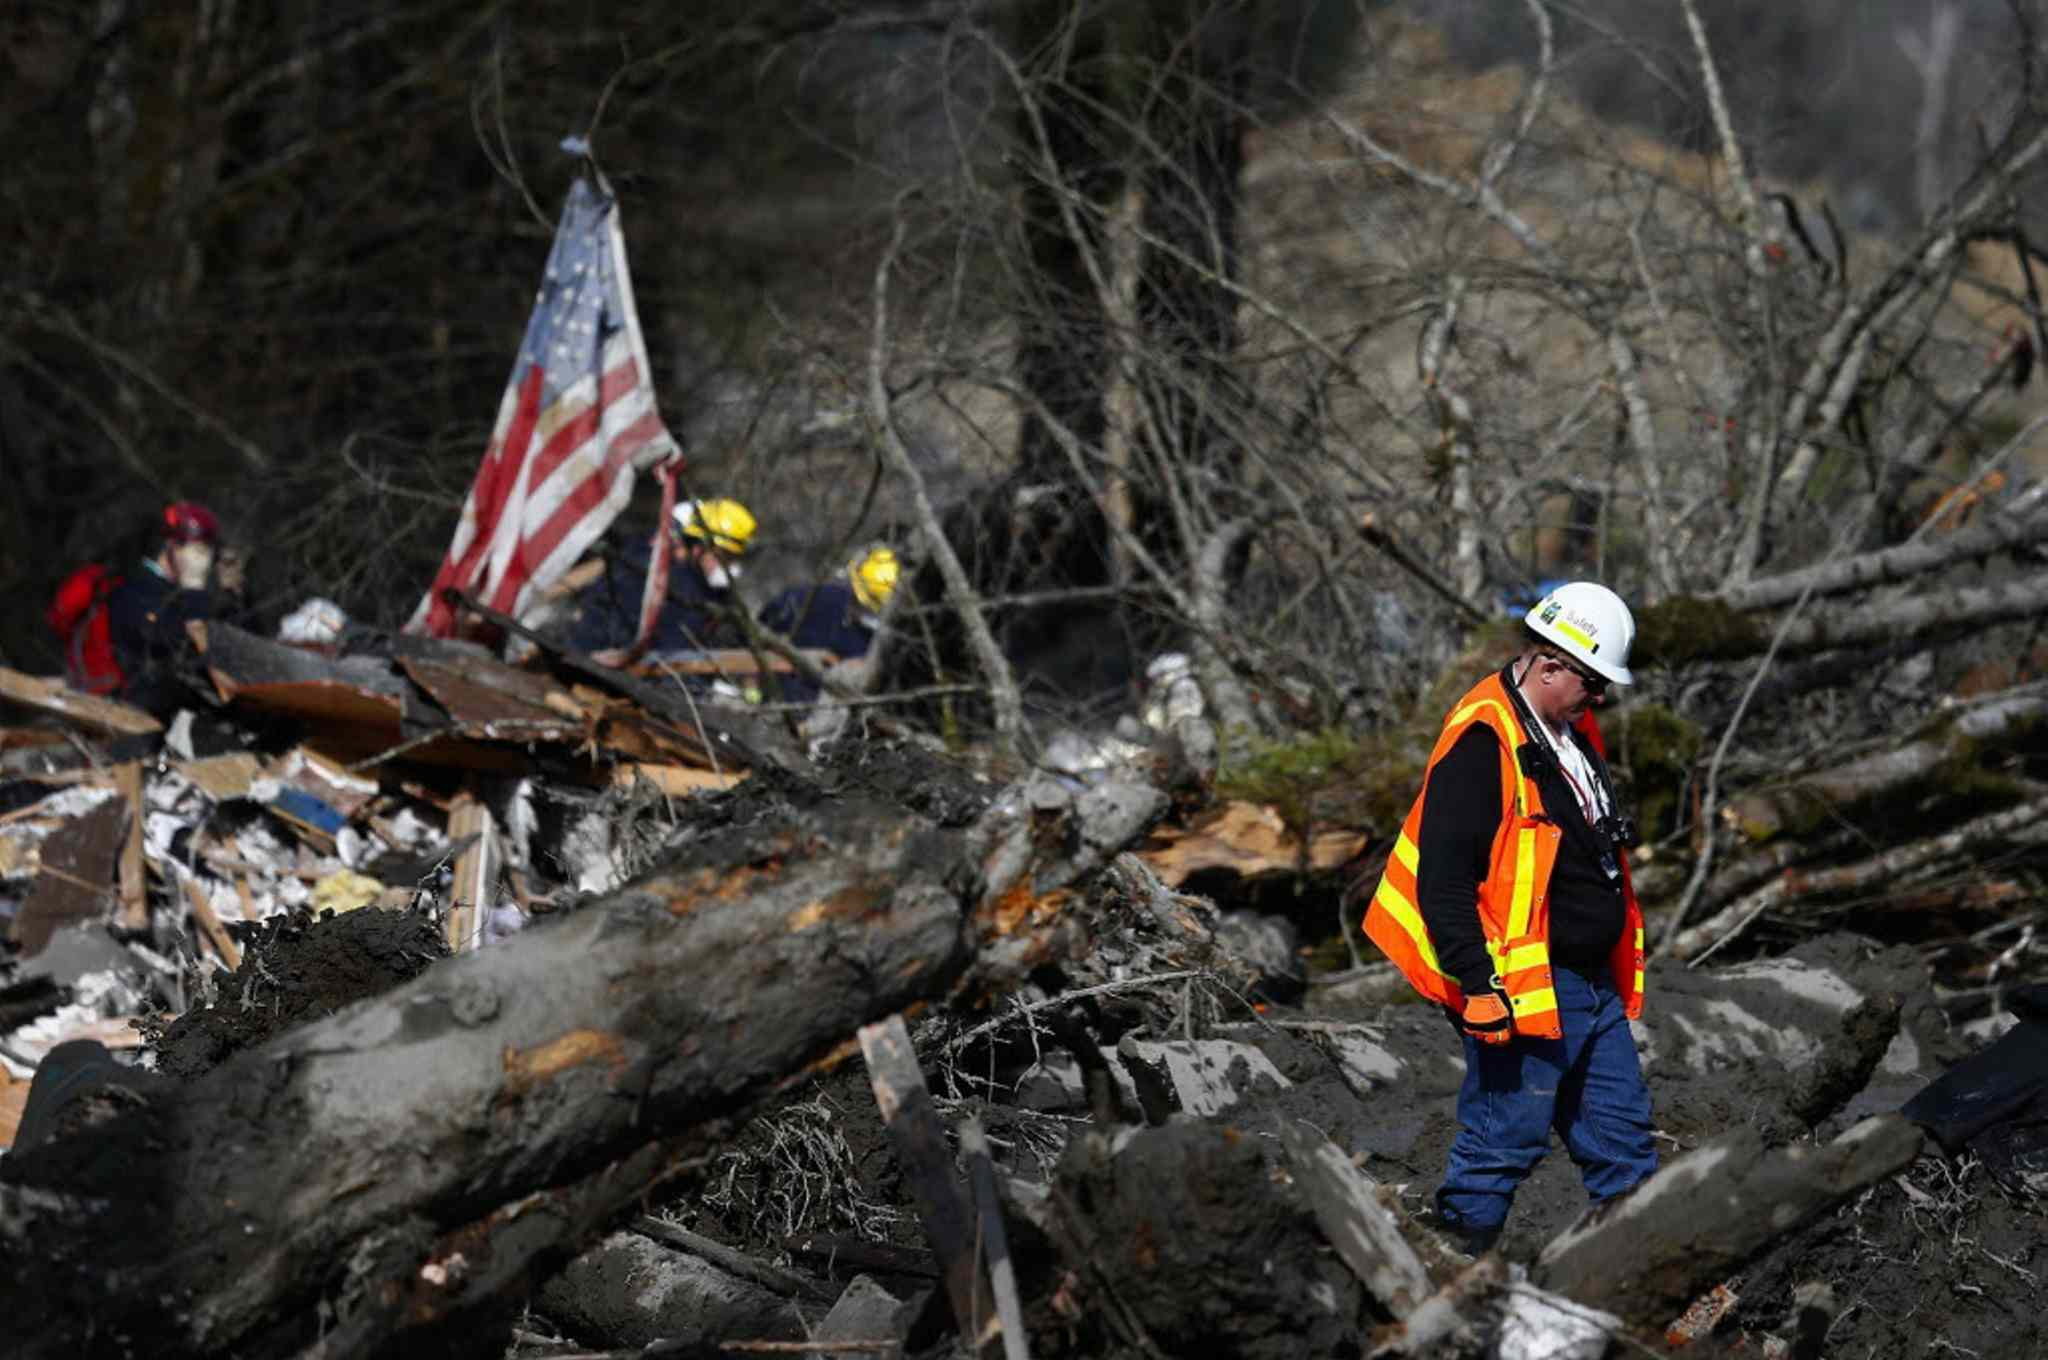 Washington State Department of Transportation safety manager Mike Breysse examines the areas devastated by Saturday's giant mudslide.